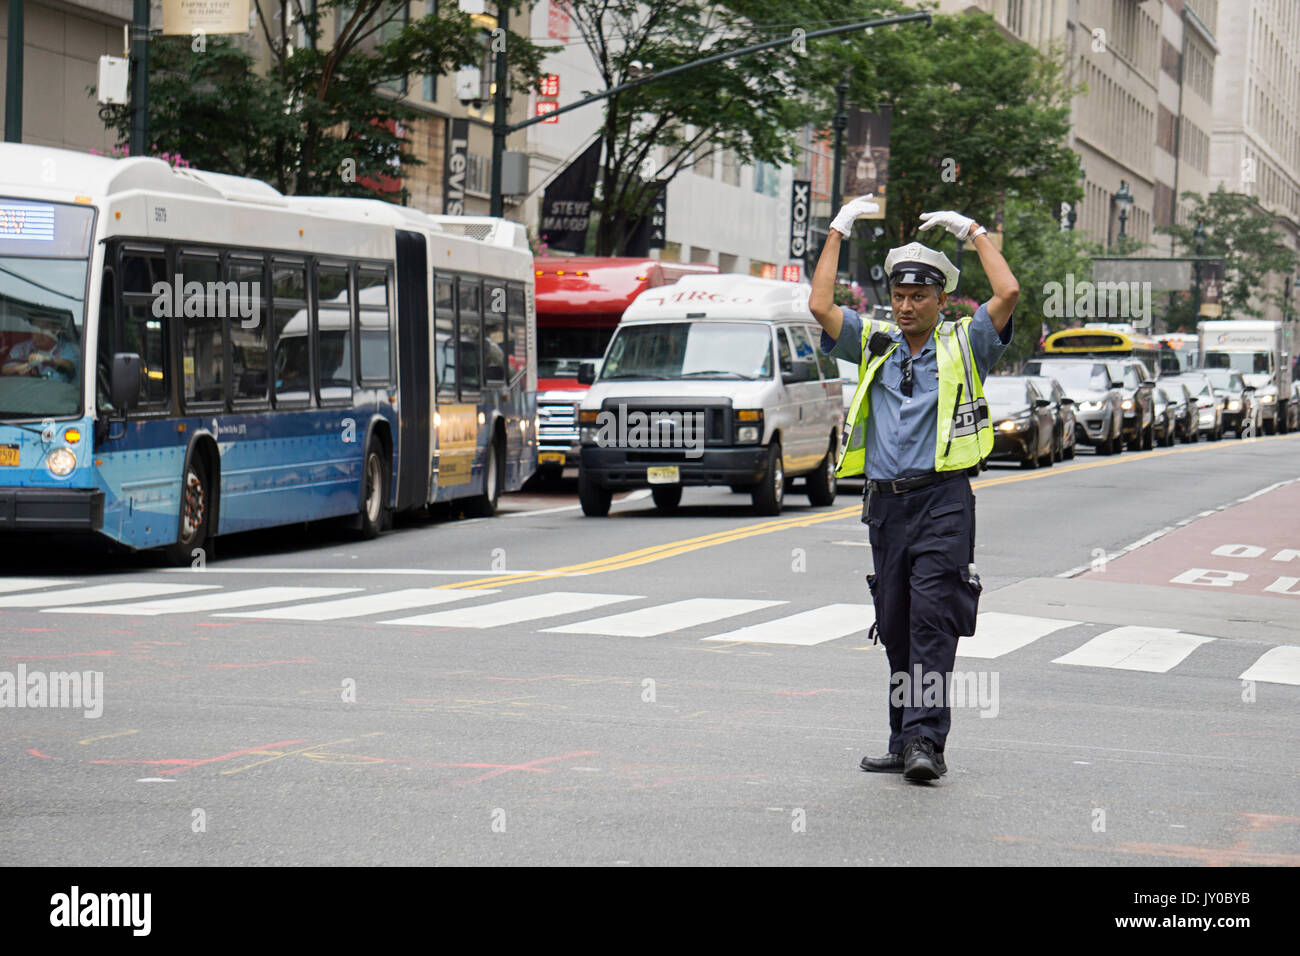 A Bangladeshi police officer directing traffic on Broadway and 34th Street, Herlad Square, in Manhattan, New York City. - Stock Image